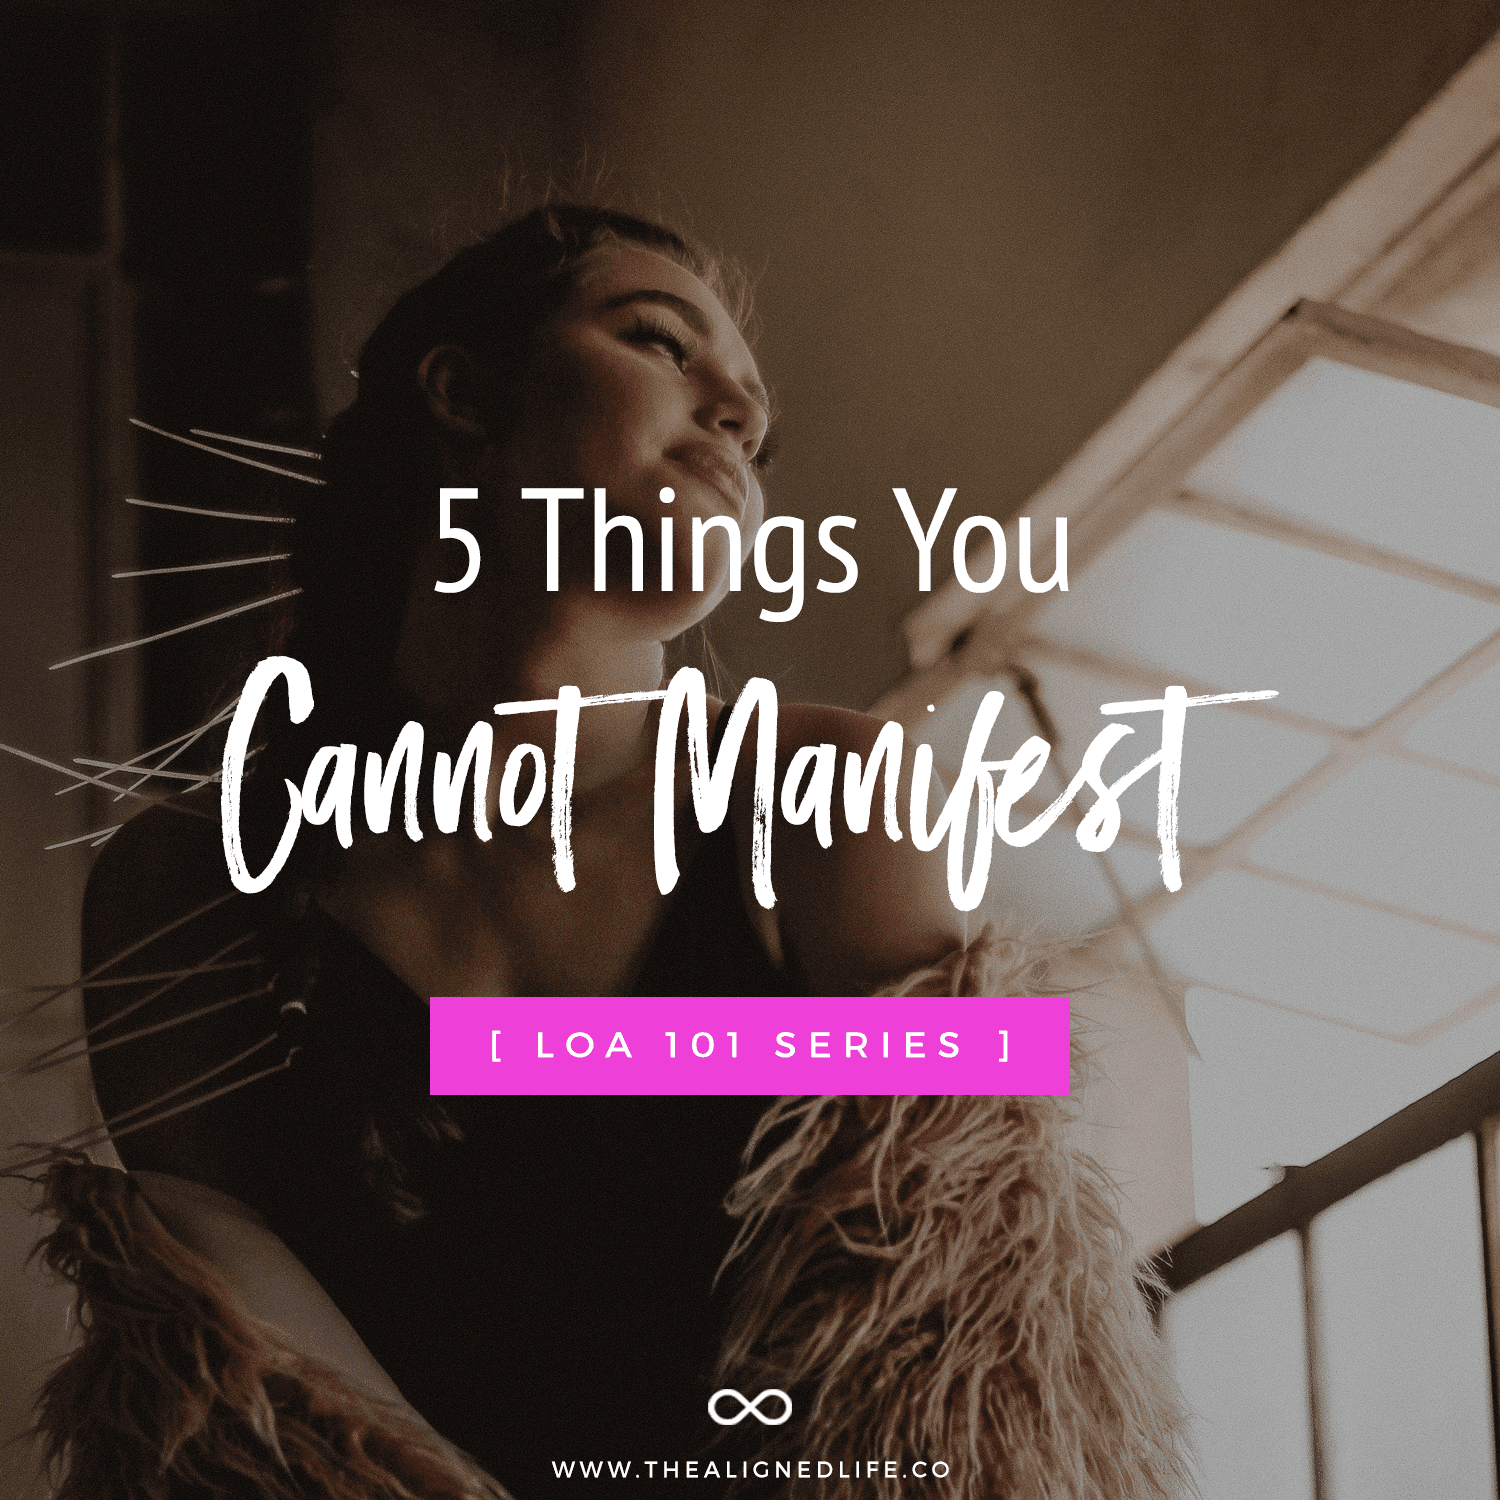 5 Things You Cannot Manifest